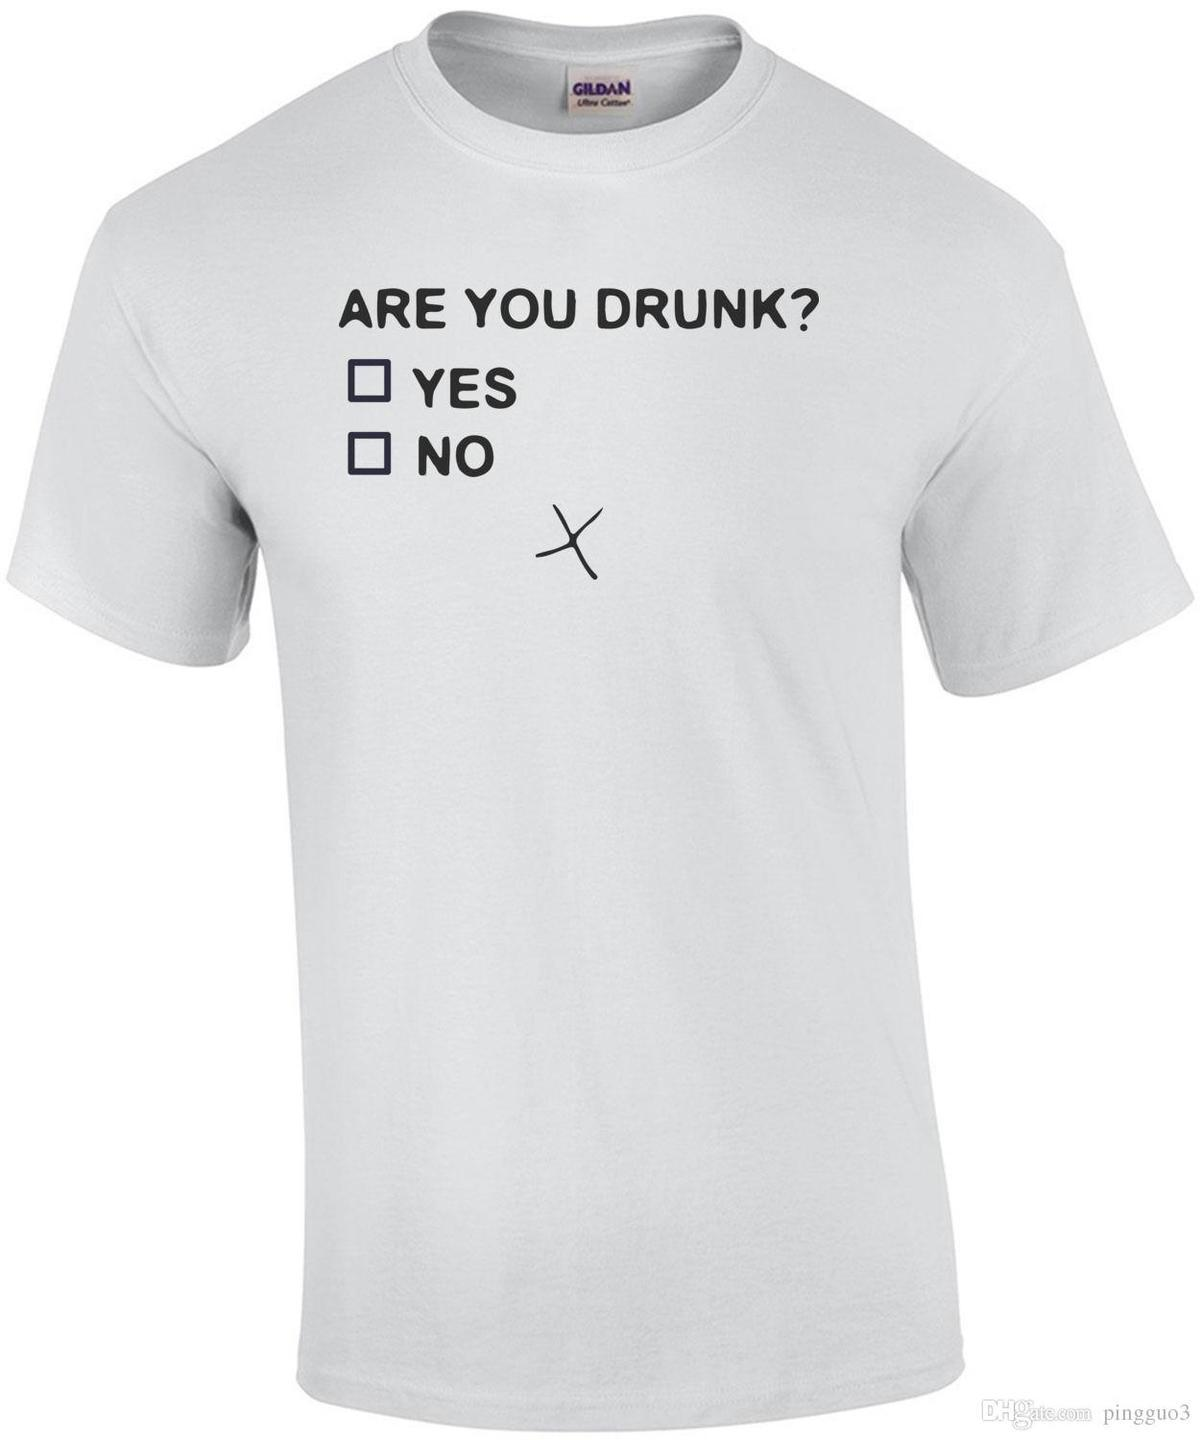 0d35846c Are You Drunk Funny Drinking T Shirt New Fashion Mens Short Sleeve T Shirt  Cotton T Shirts Hot Sell 2017 Fashion Top Tee Quirky T Shirts Hilarious  Shirts ...